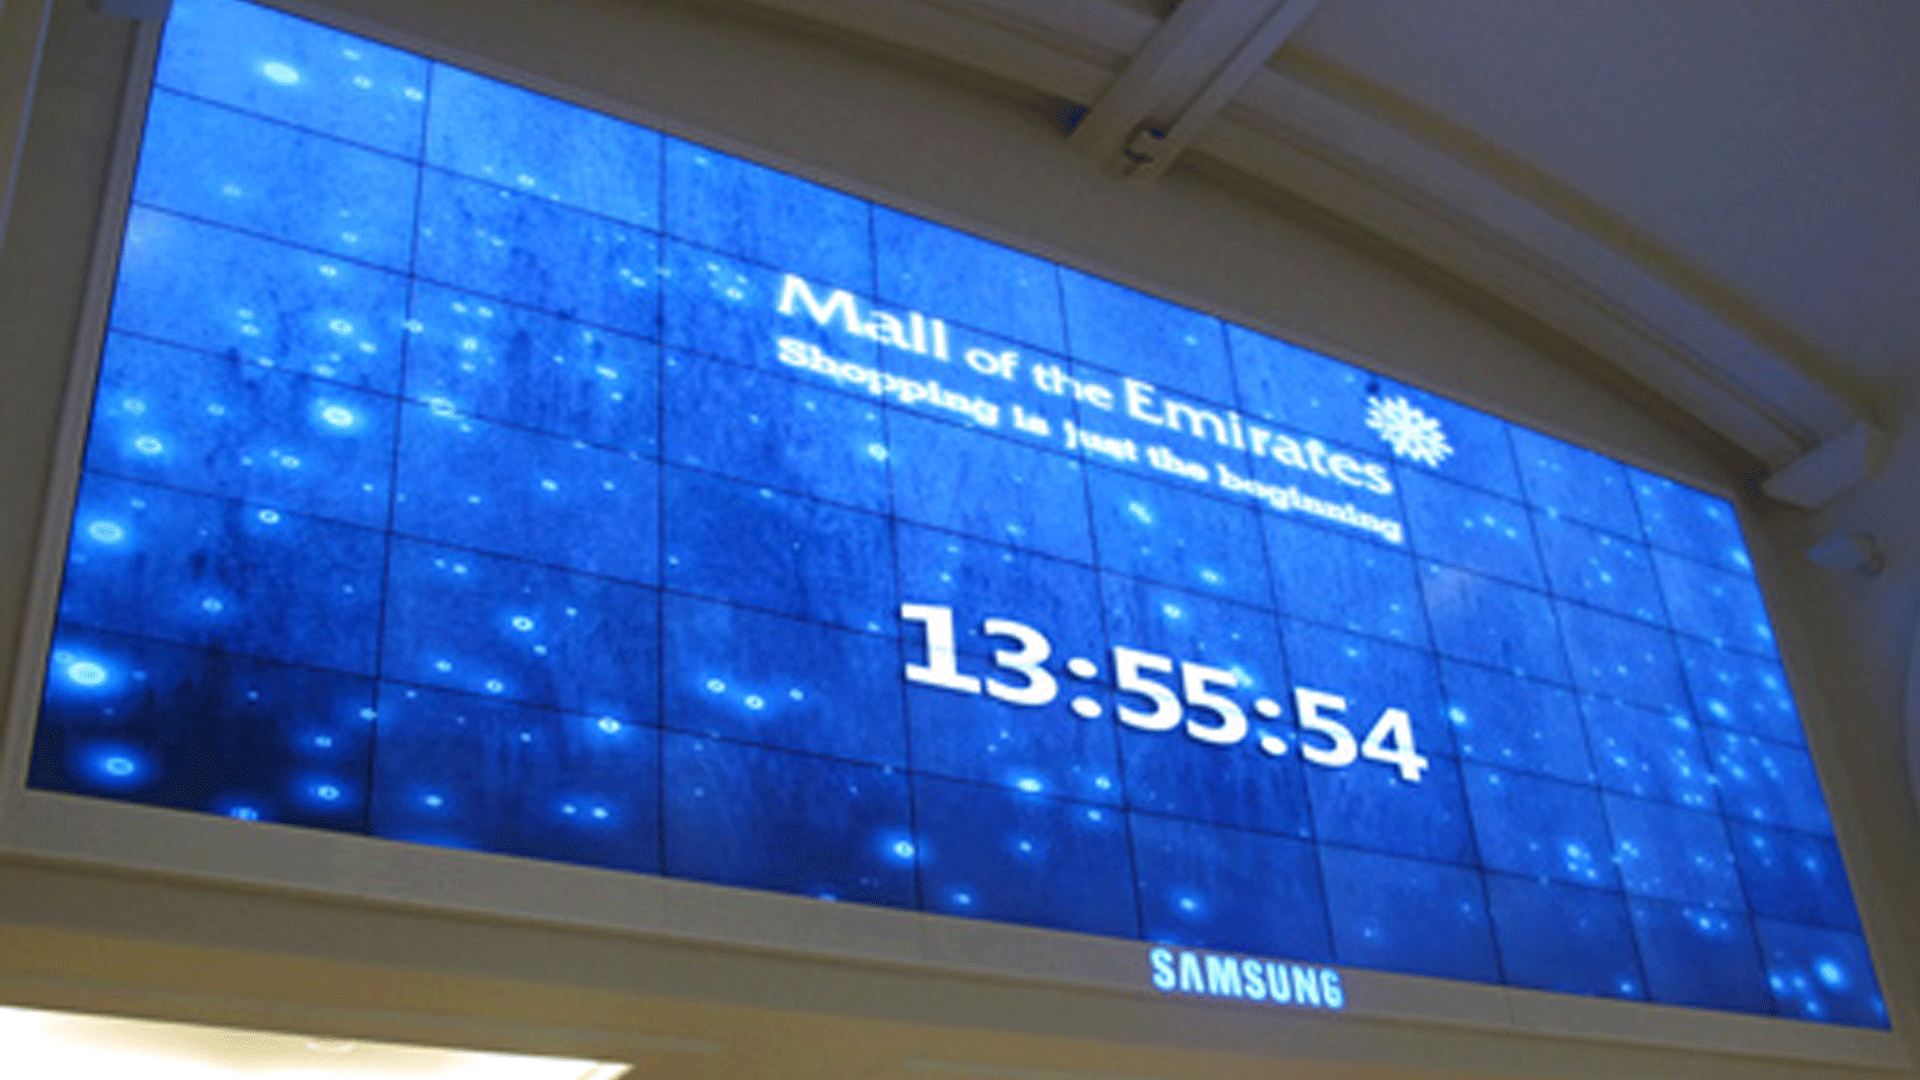 A mix of Mura MPX-4/2 and Mura MPX-4/0 boards drive digital signage on the wall, which advertises mall activities and promotions.